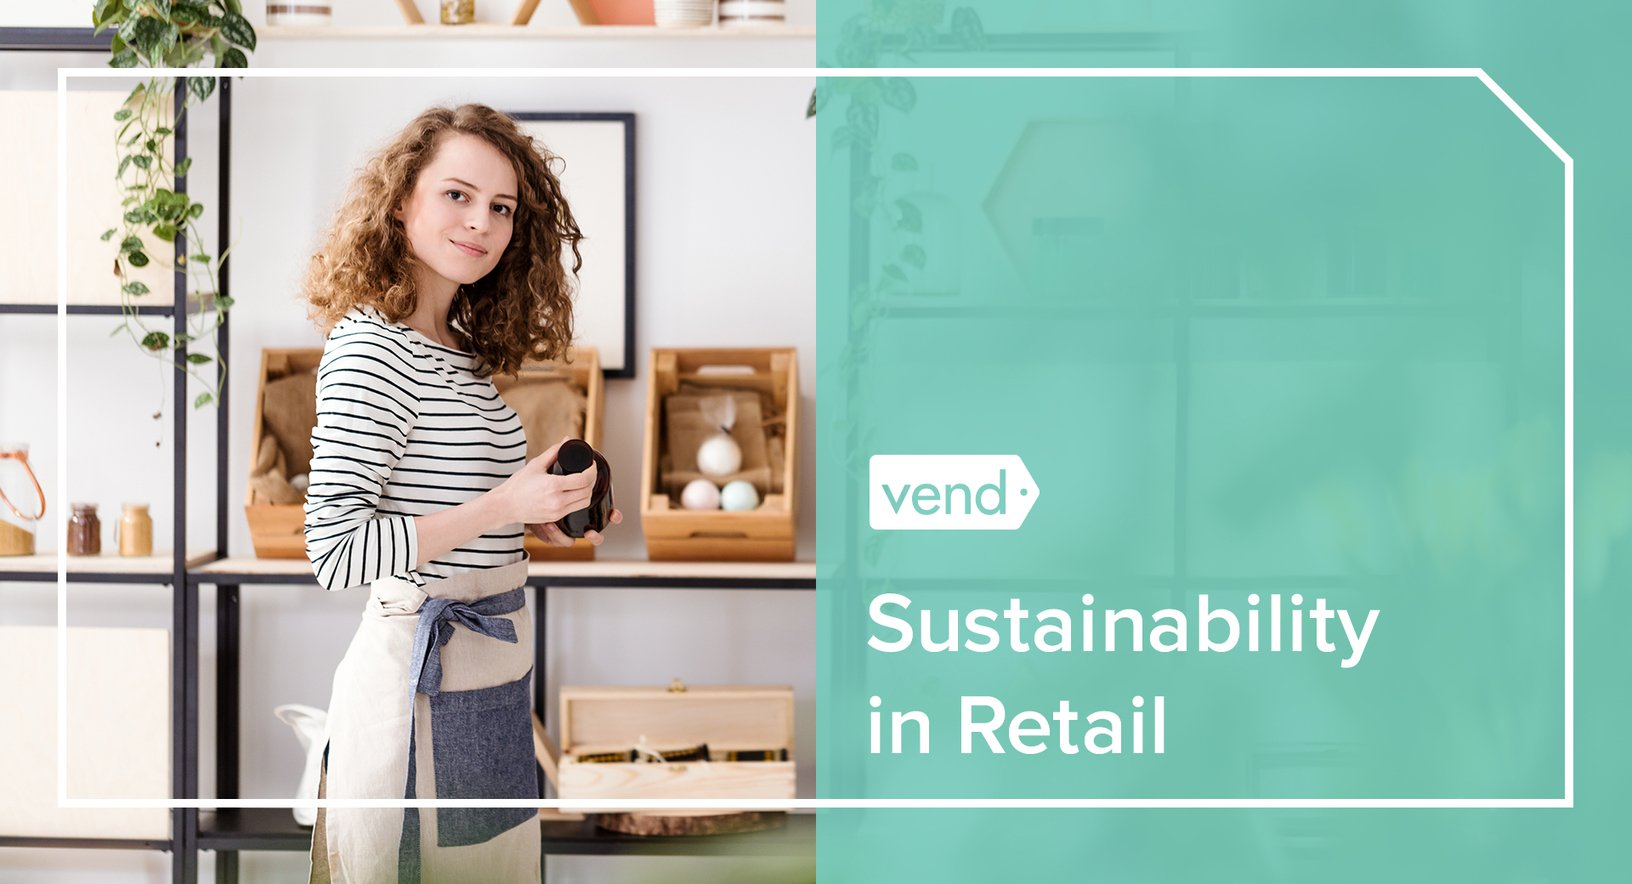 Sustainability in Retail: 4 Ways to Make Your Business More Sustainable, The Circular Economy